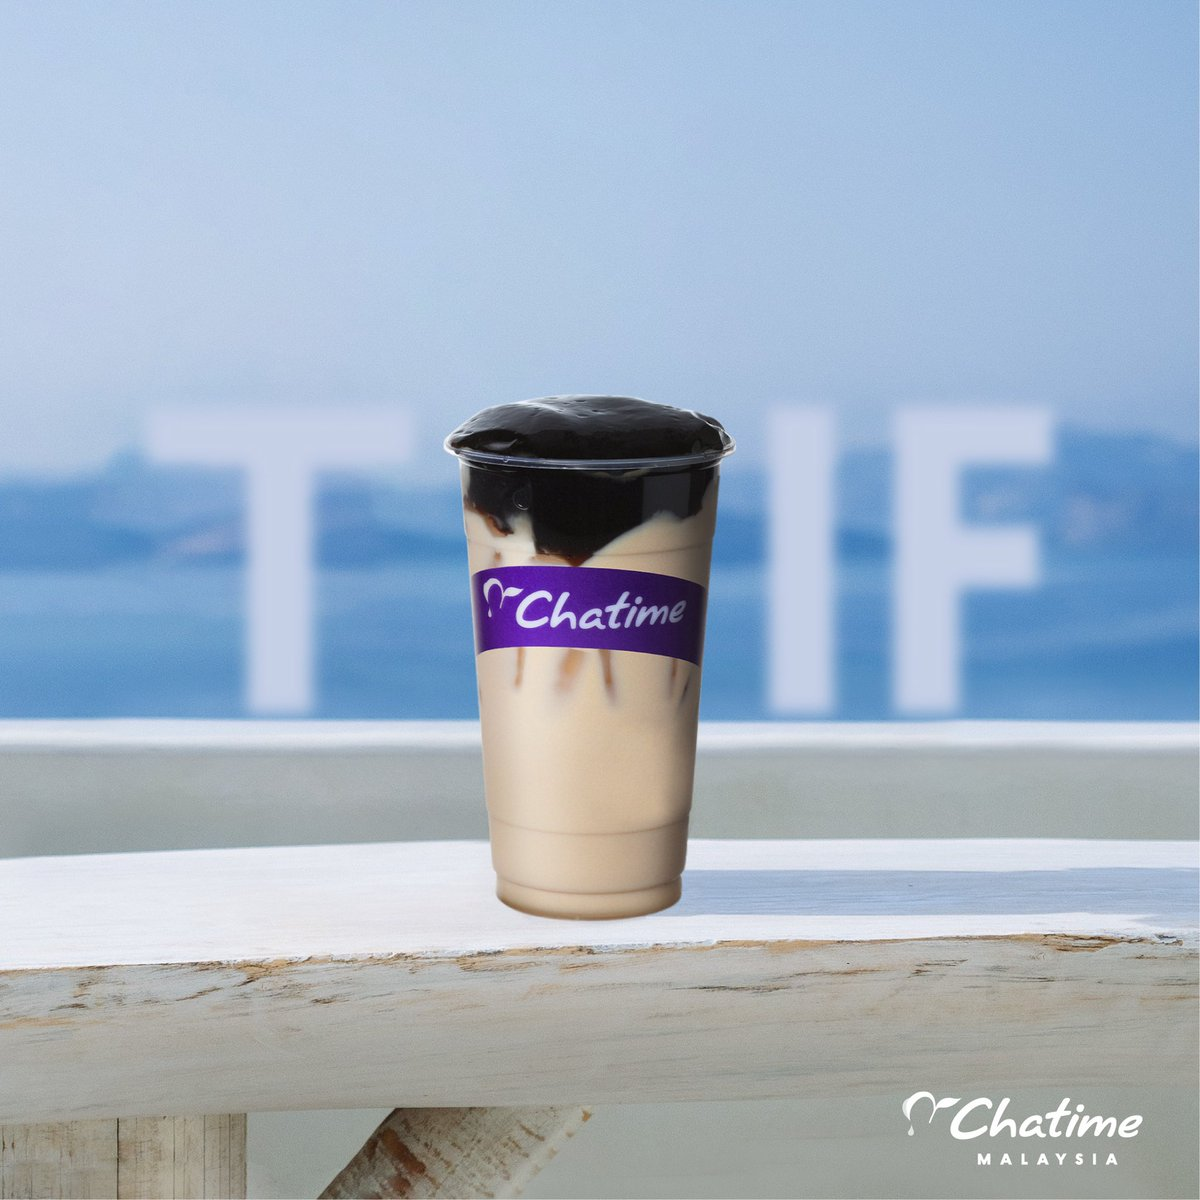 Chatime Malaysia on Twitter: